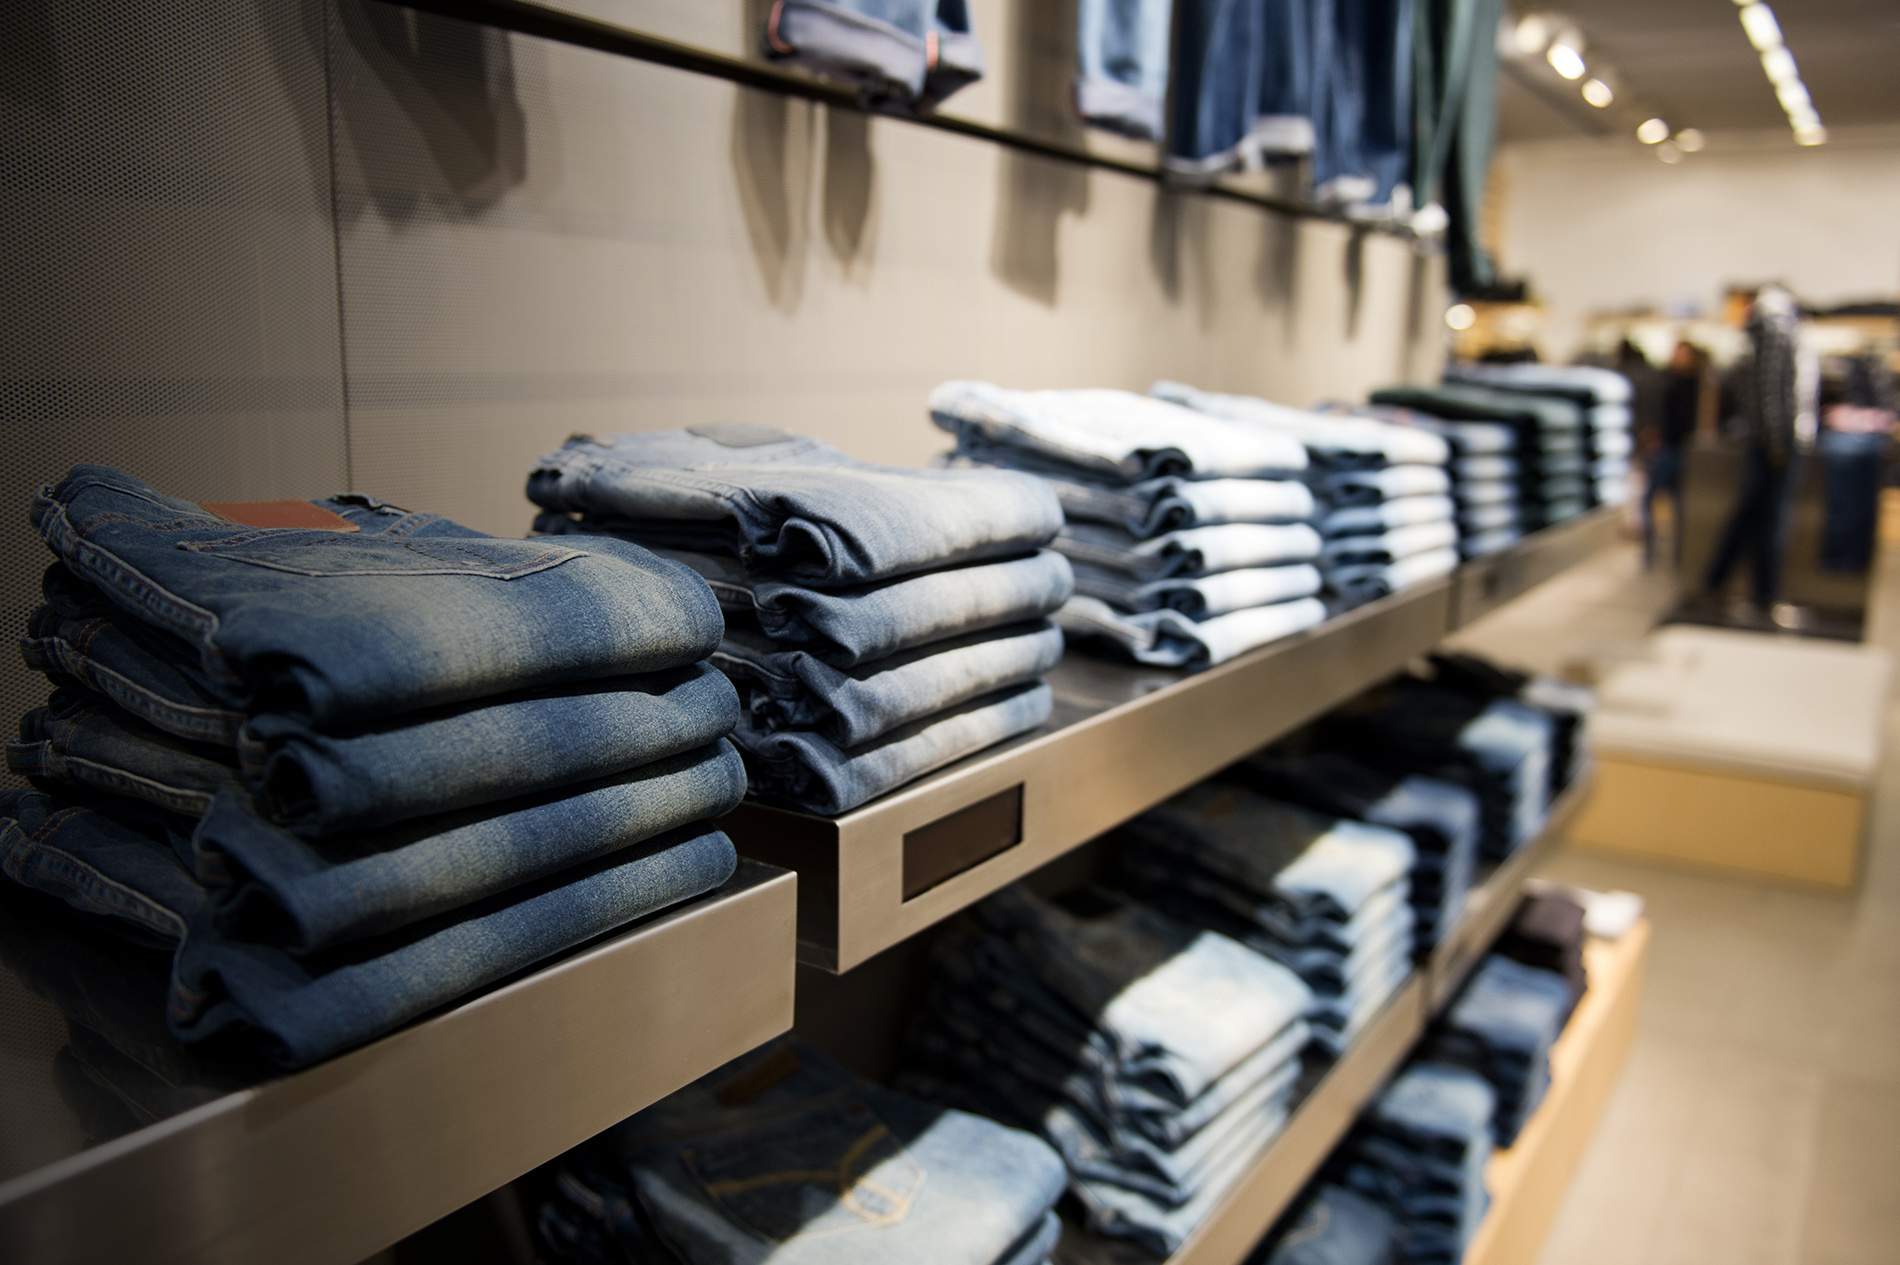 retail store with jeans on a shelf